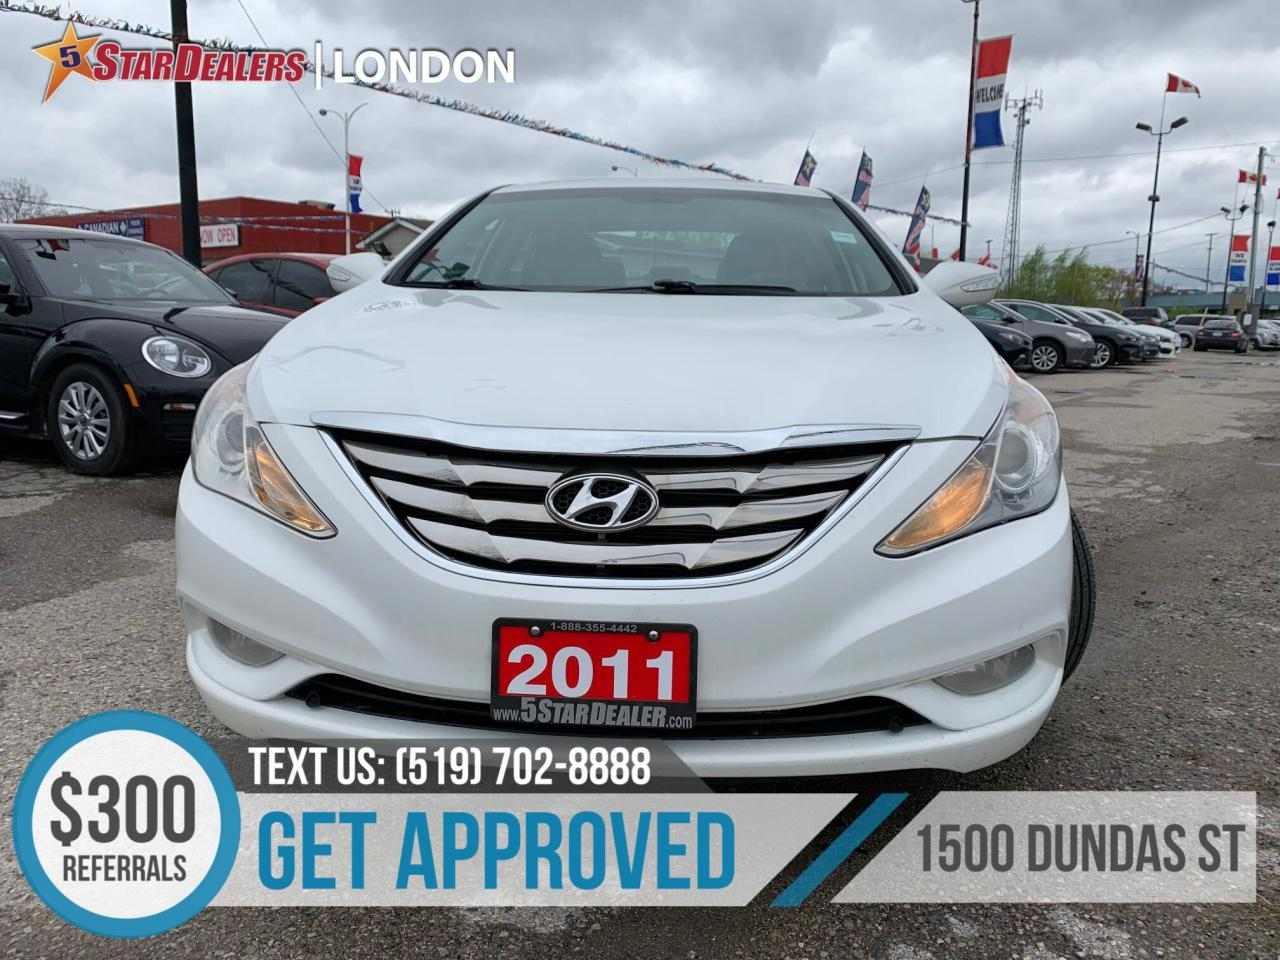 Used 2011 Hyundai Sonata for Sale in London, Ontario   Carpages ca